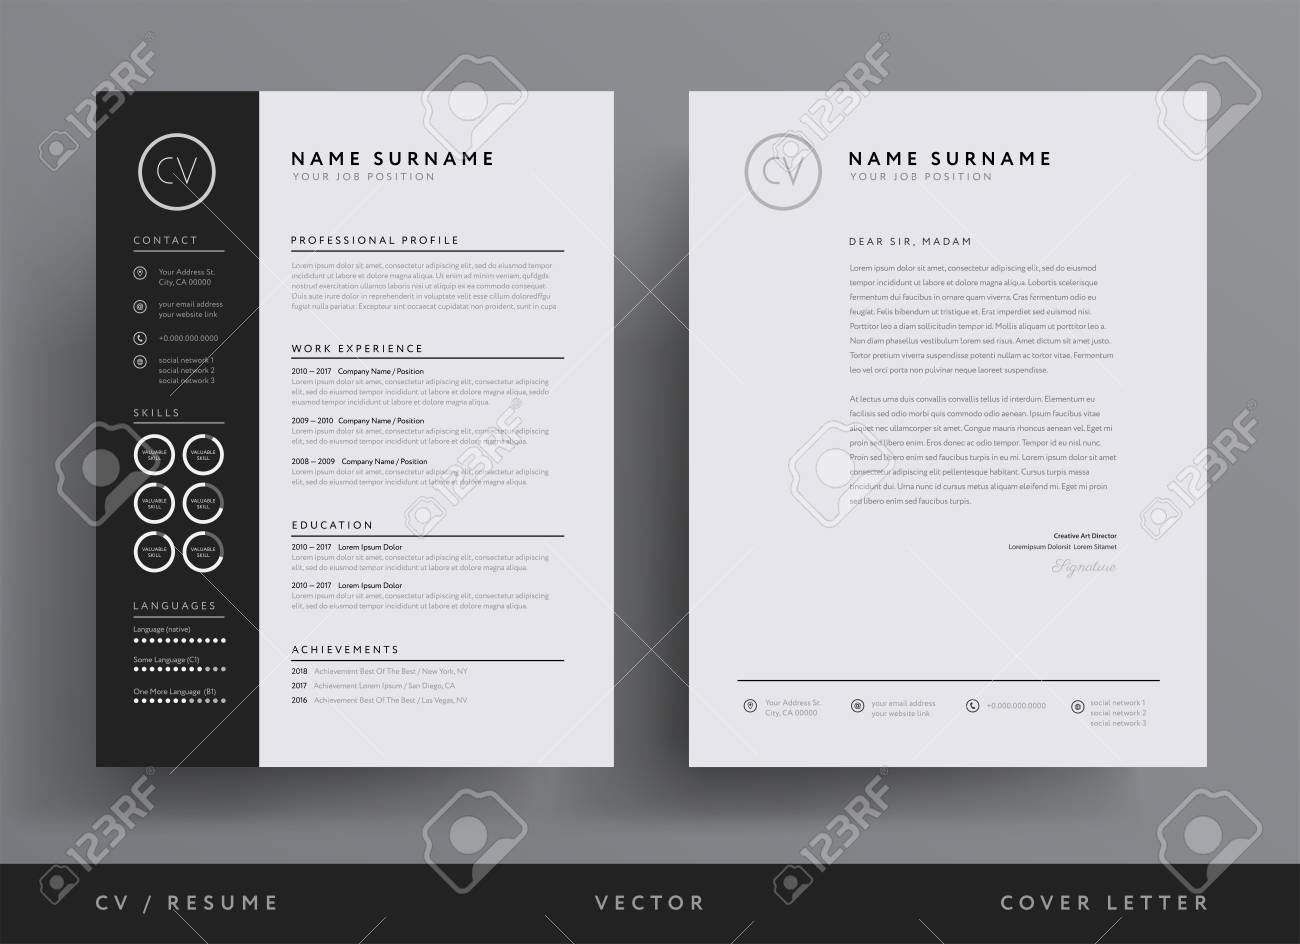 professional resume and letterhead template design royalty free vectors stock Resume Professional Resume Letterhead